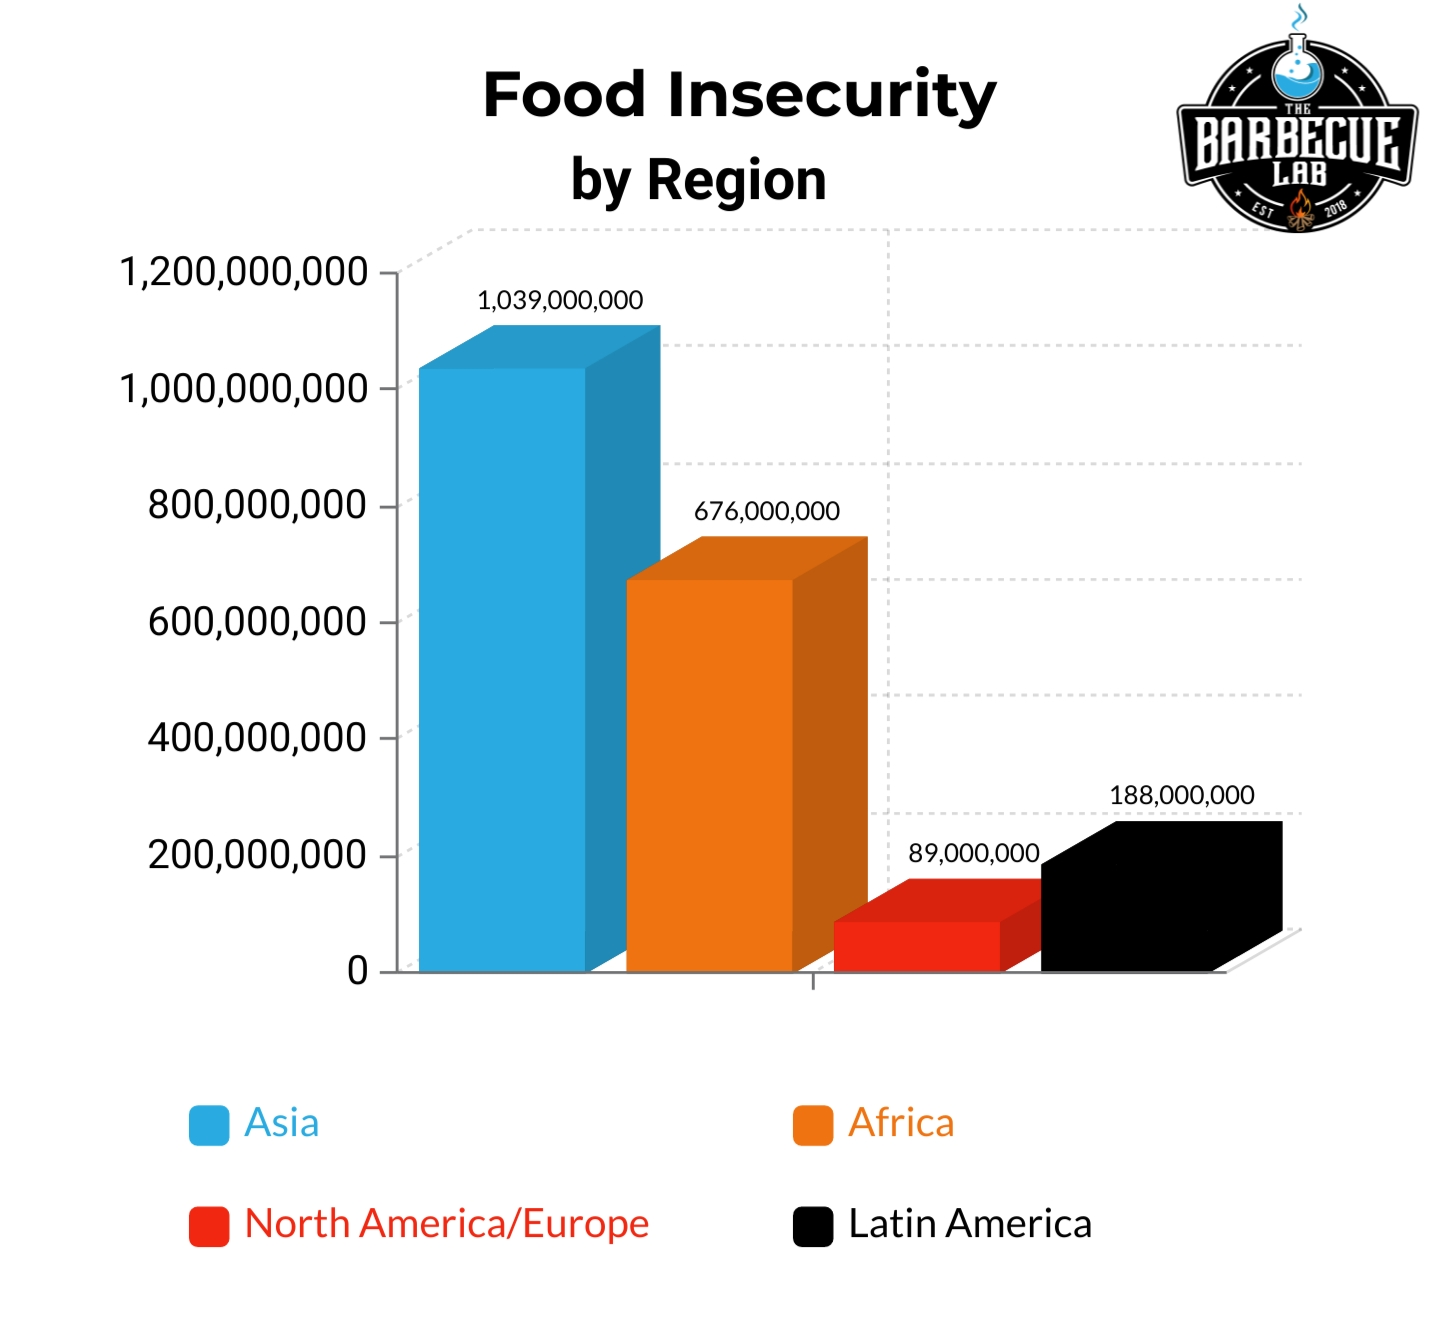 bar graph showing food insecurity by region of the world